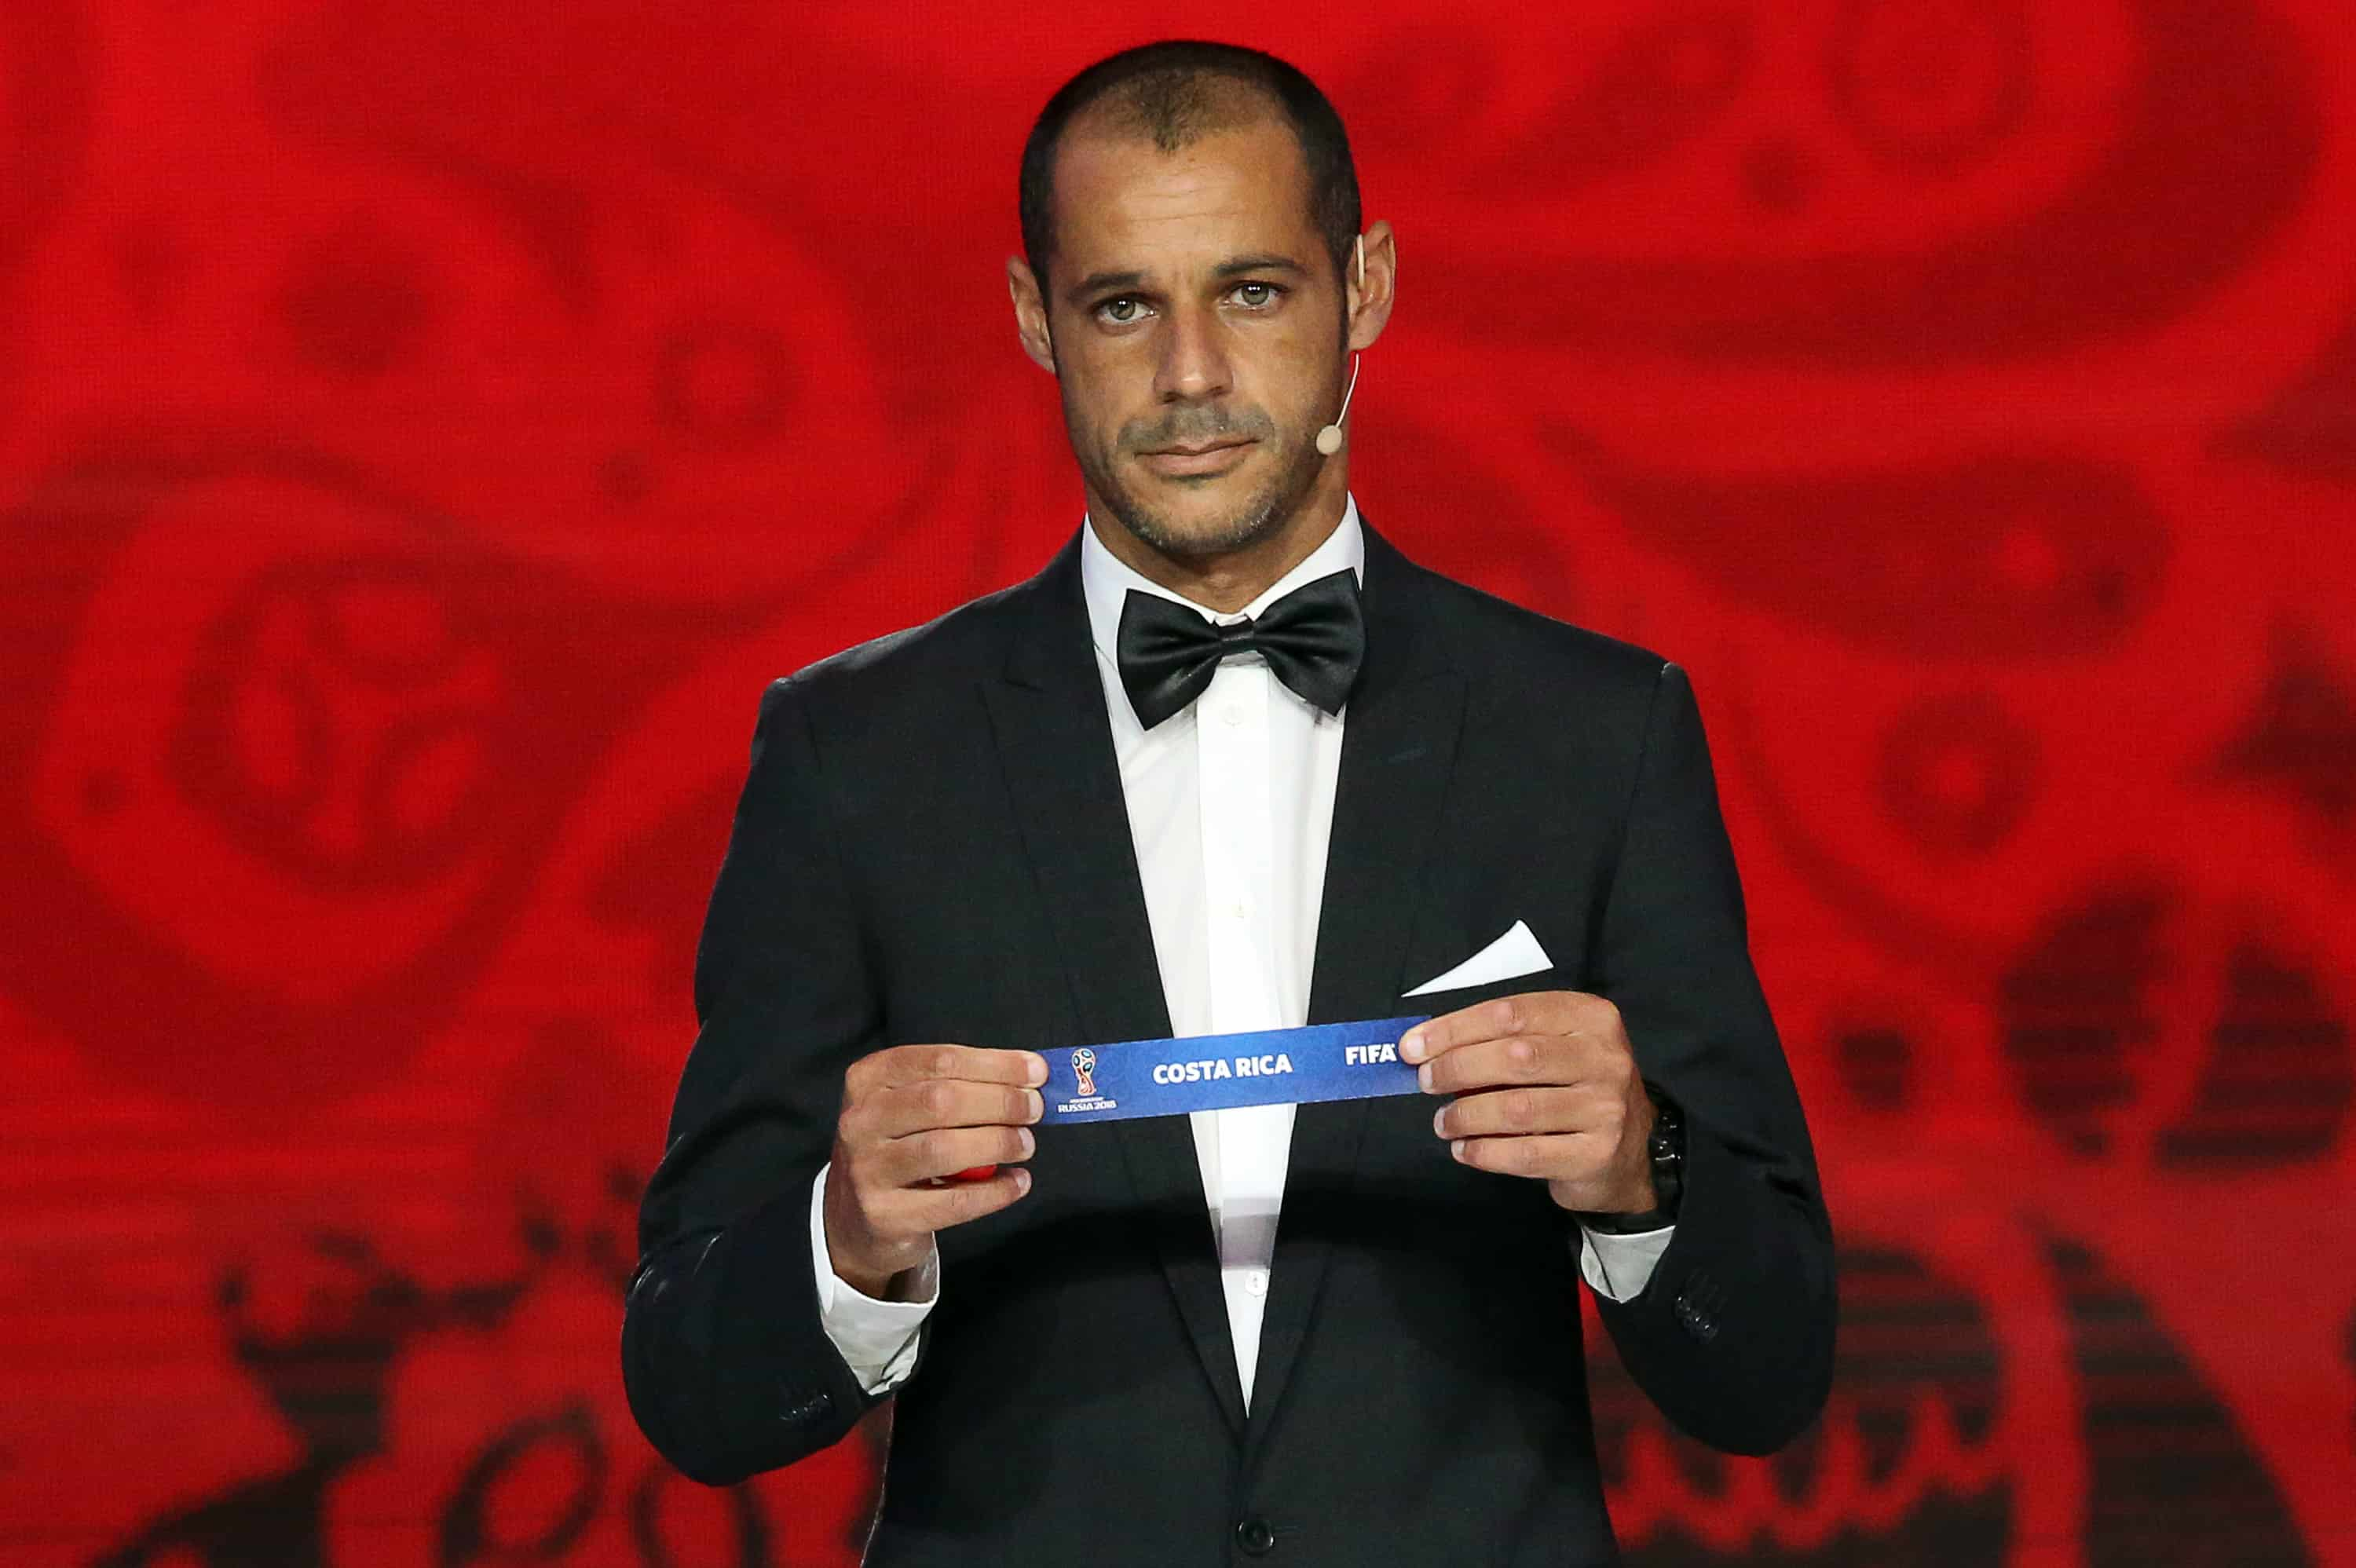 Portugal's beach soccer team forward and captain Madjer shows the name of Costa Rica during the preliminary draw for the Confederation of North, Central American and Caribbean Association Football.